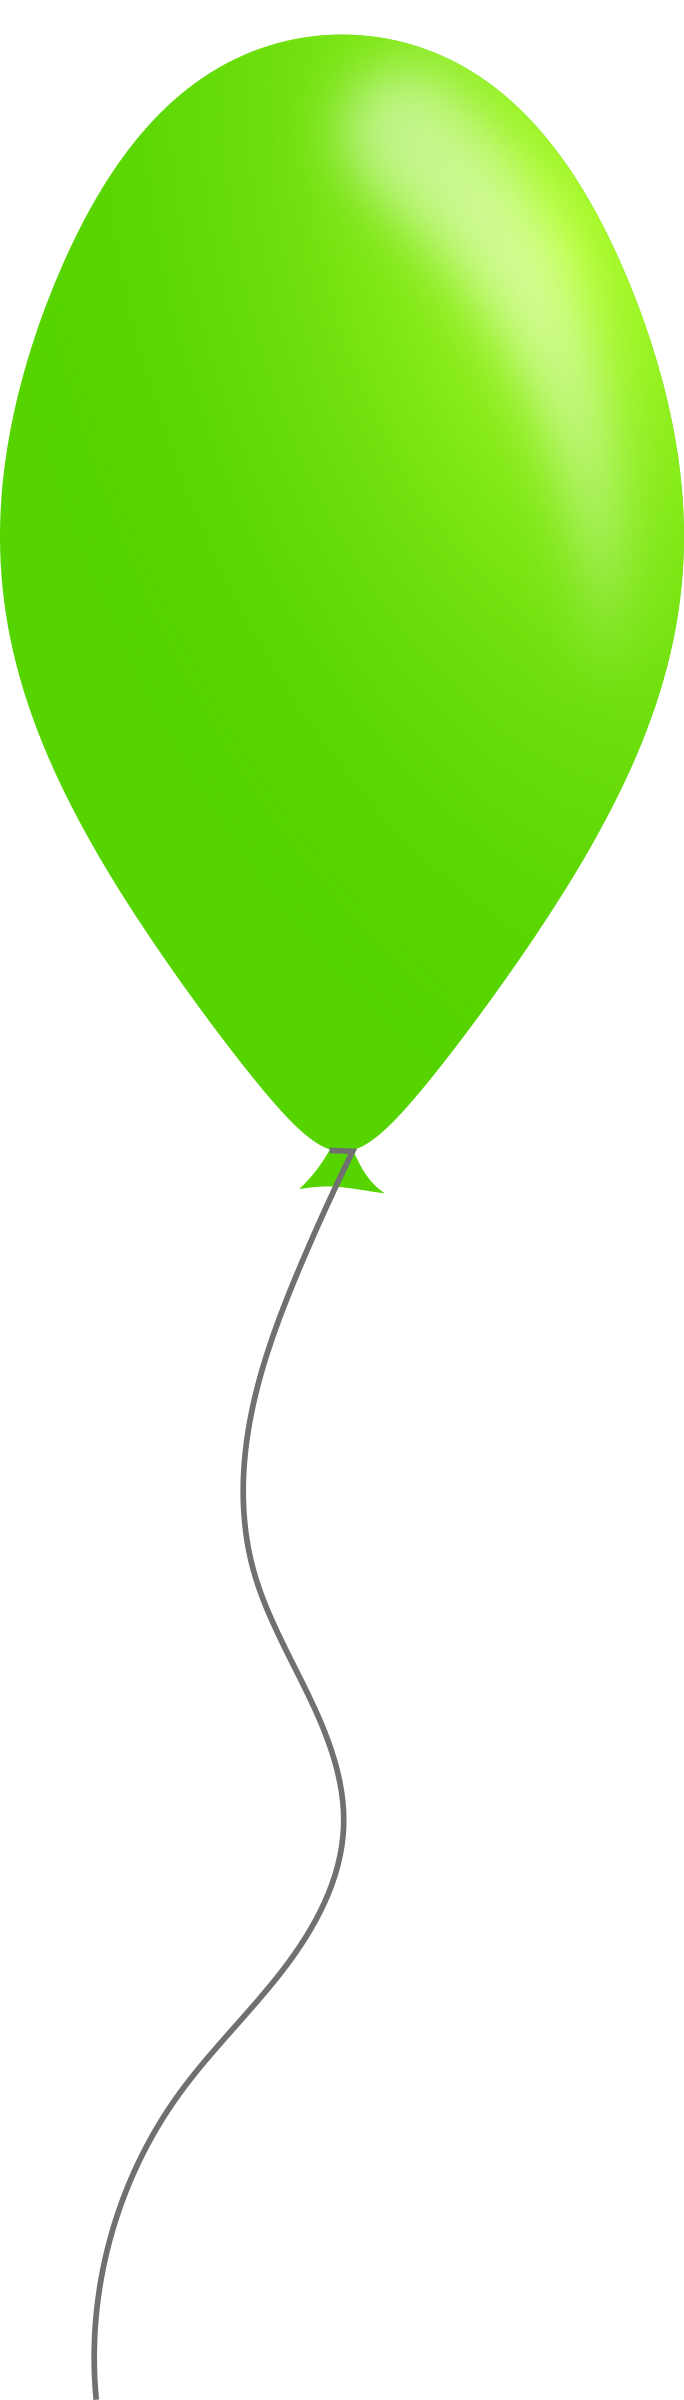 Green balloon by Caig